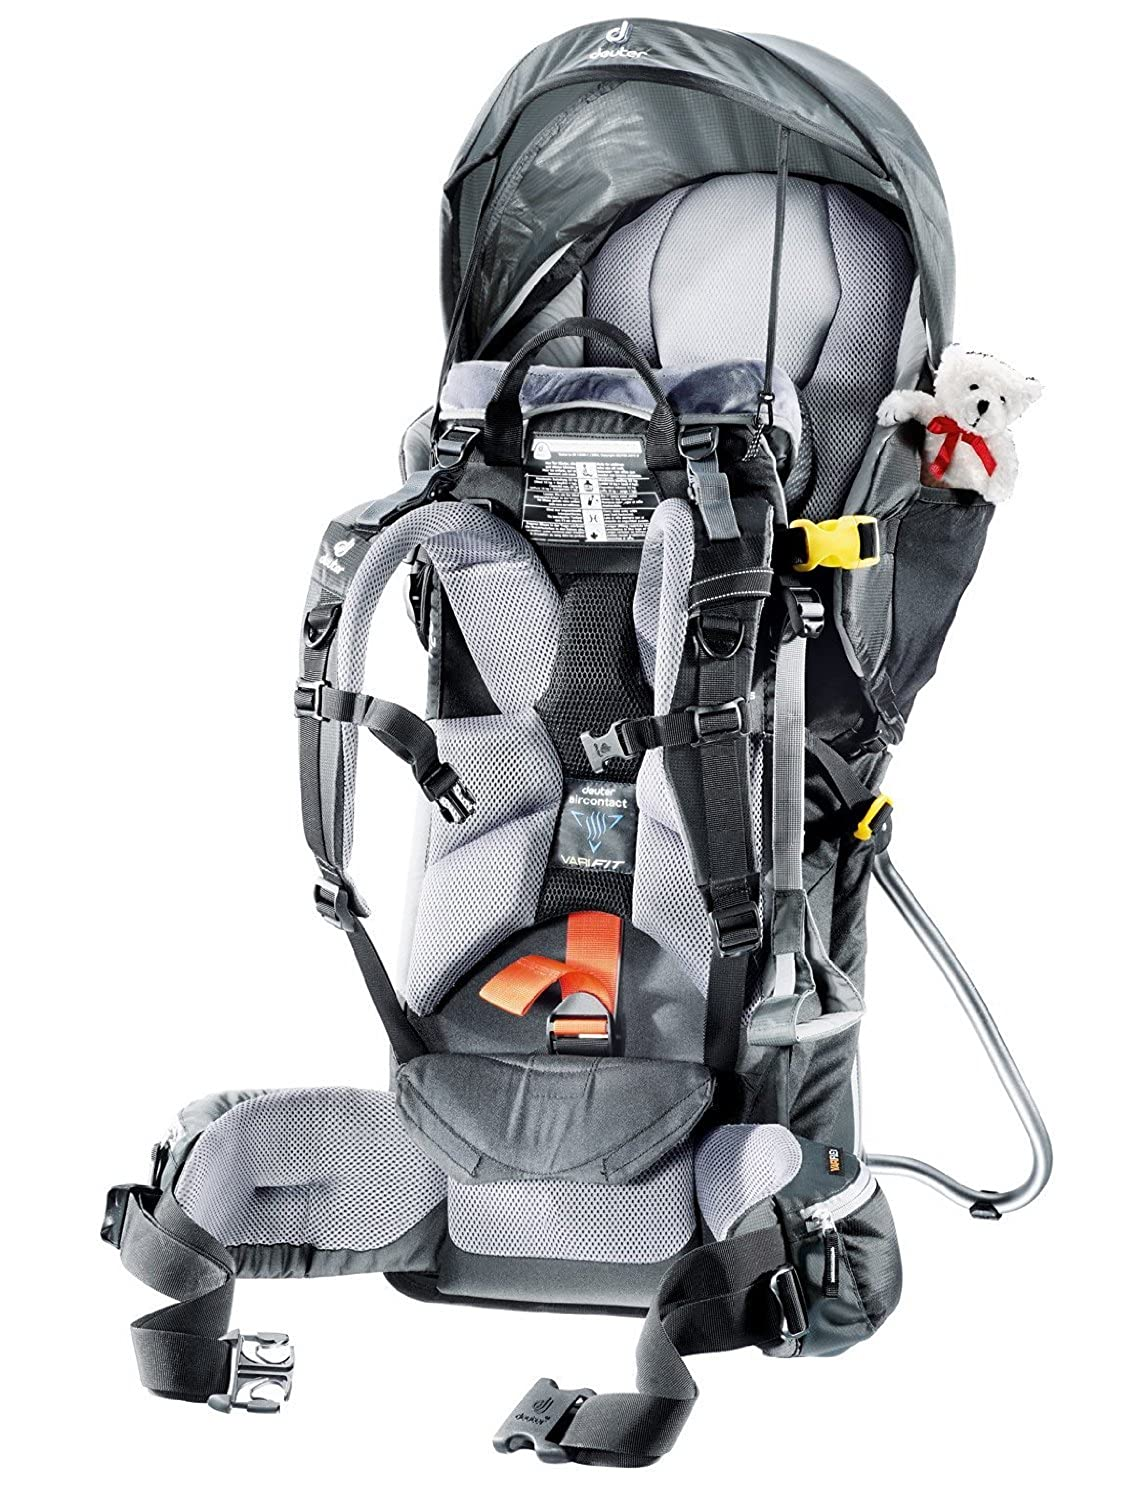 bdb66be4c64 Amazon.com   Deuter Kid Comfort III Framed Hiking Child Carrier for Infants  and Toddlers   Baby